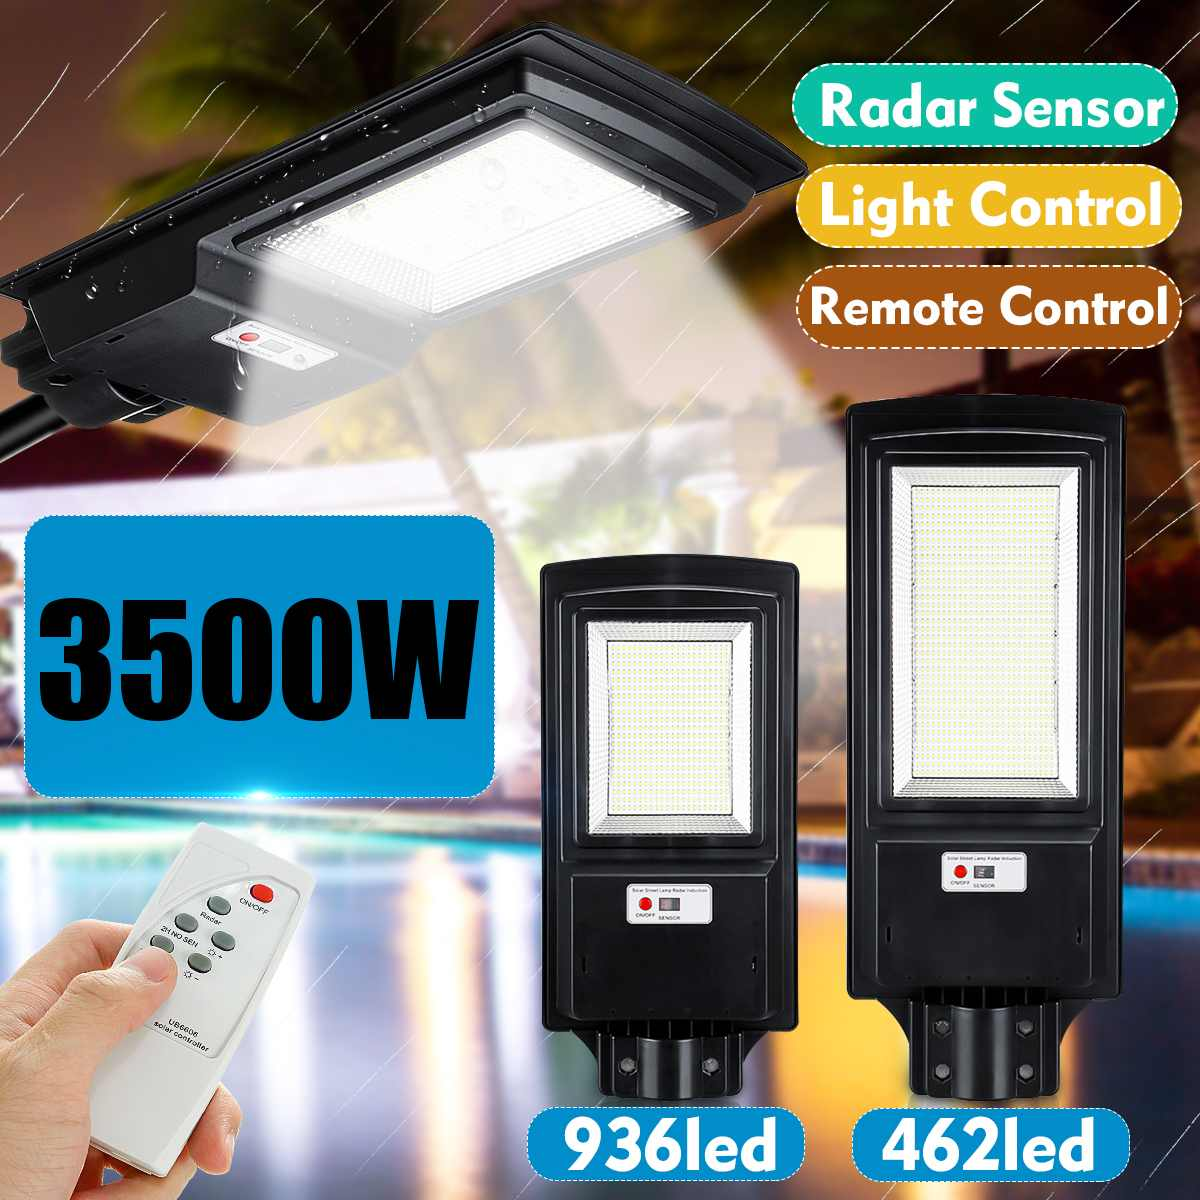 LED Solar Street Light IP65 436/936LED 8500K Light Radar Motion Sensor Wall Timing Lamp Remote Control For Garden Outdoor 3500W